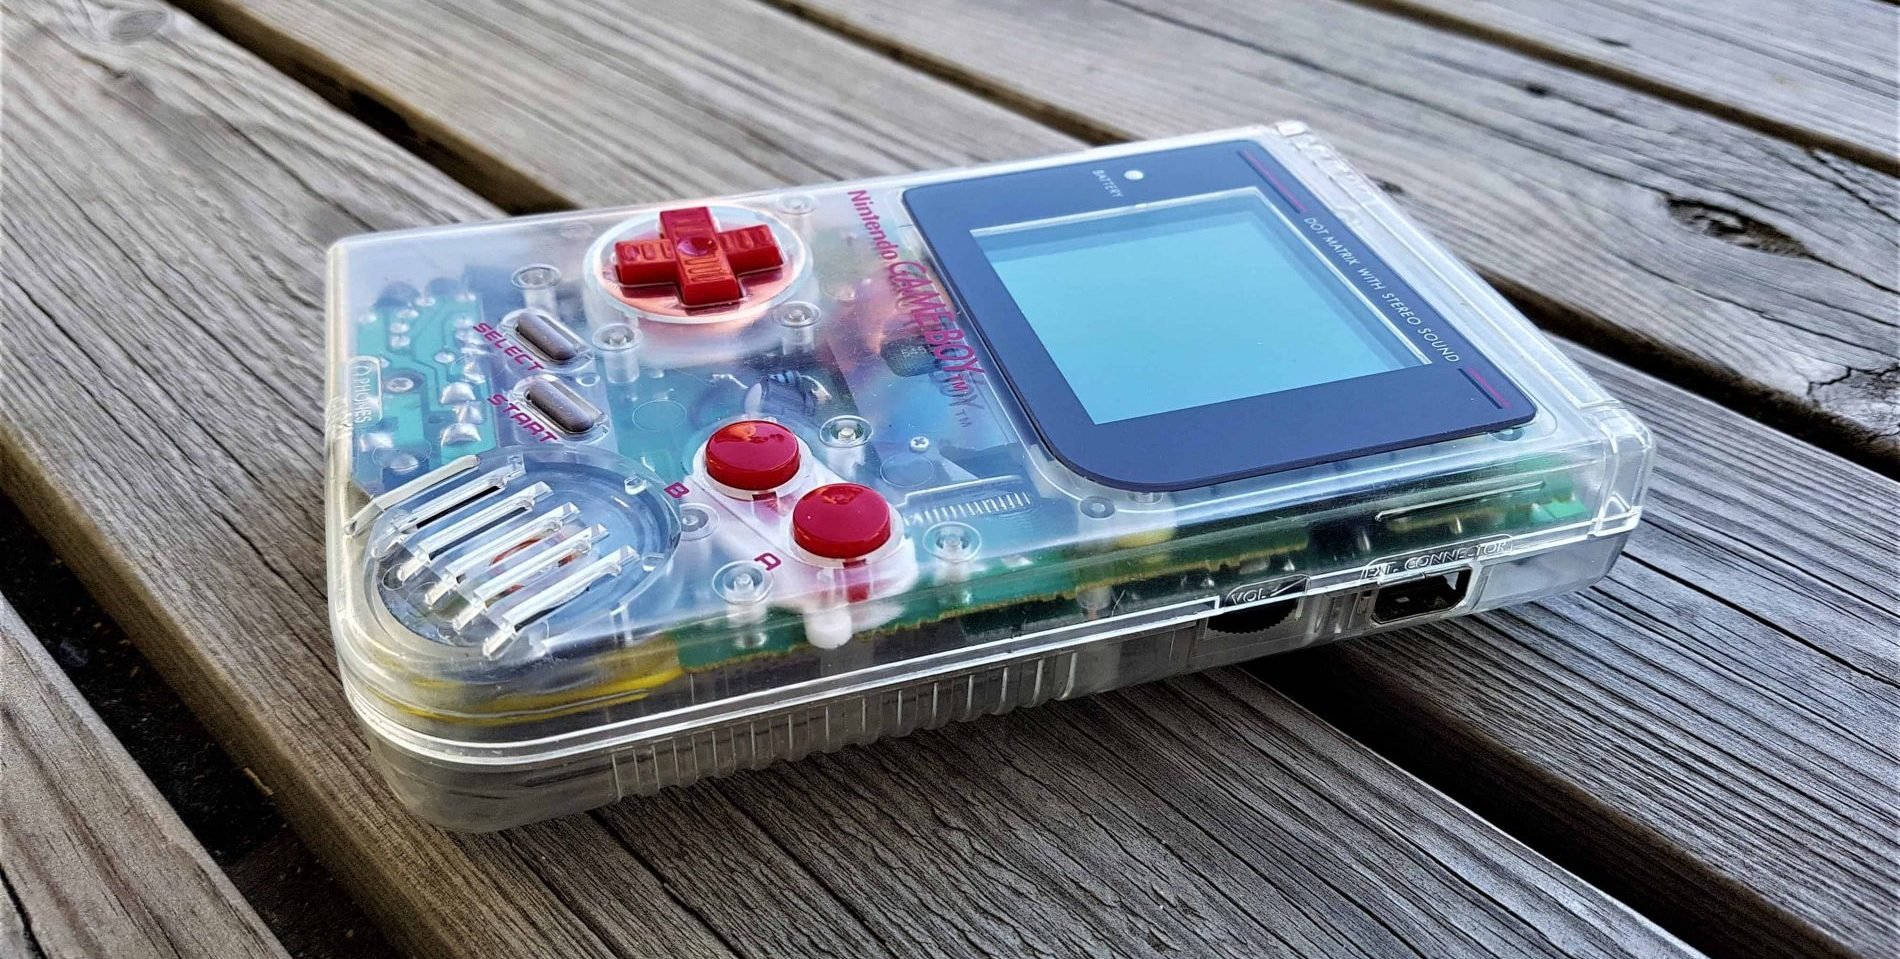 Game Boy Clear / Crystal with mods